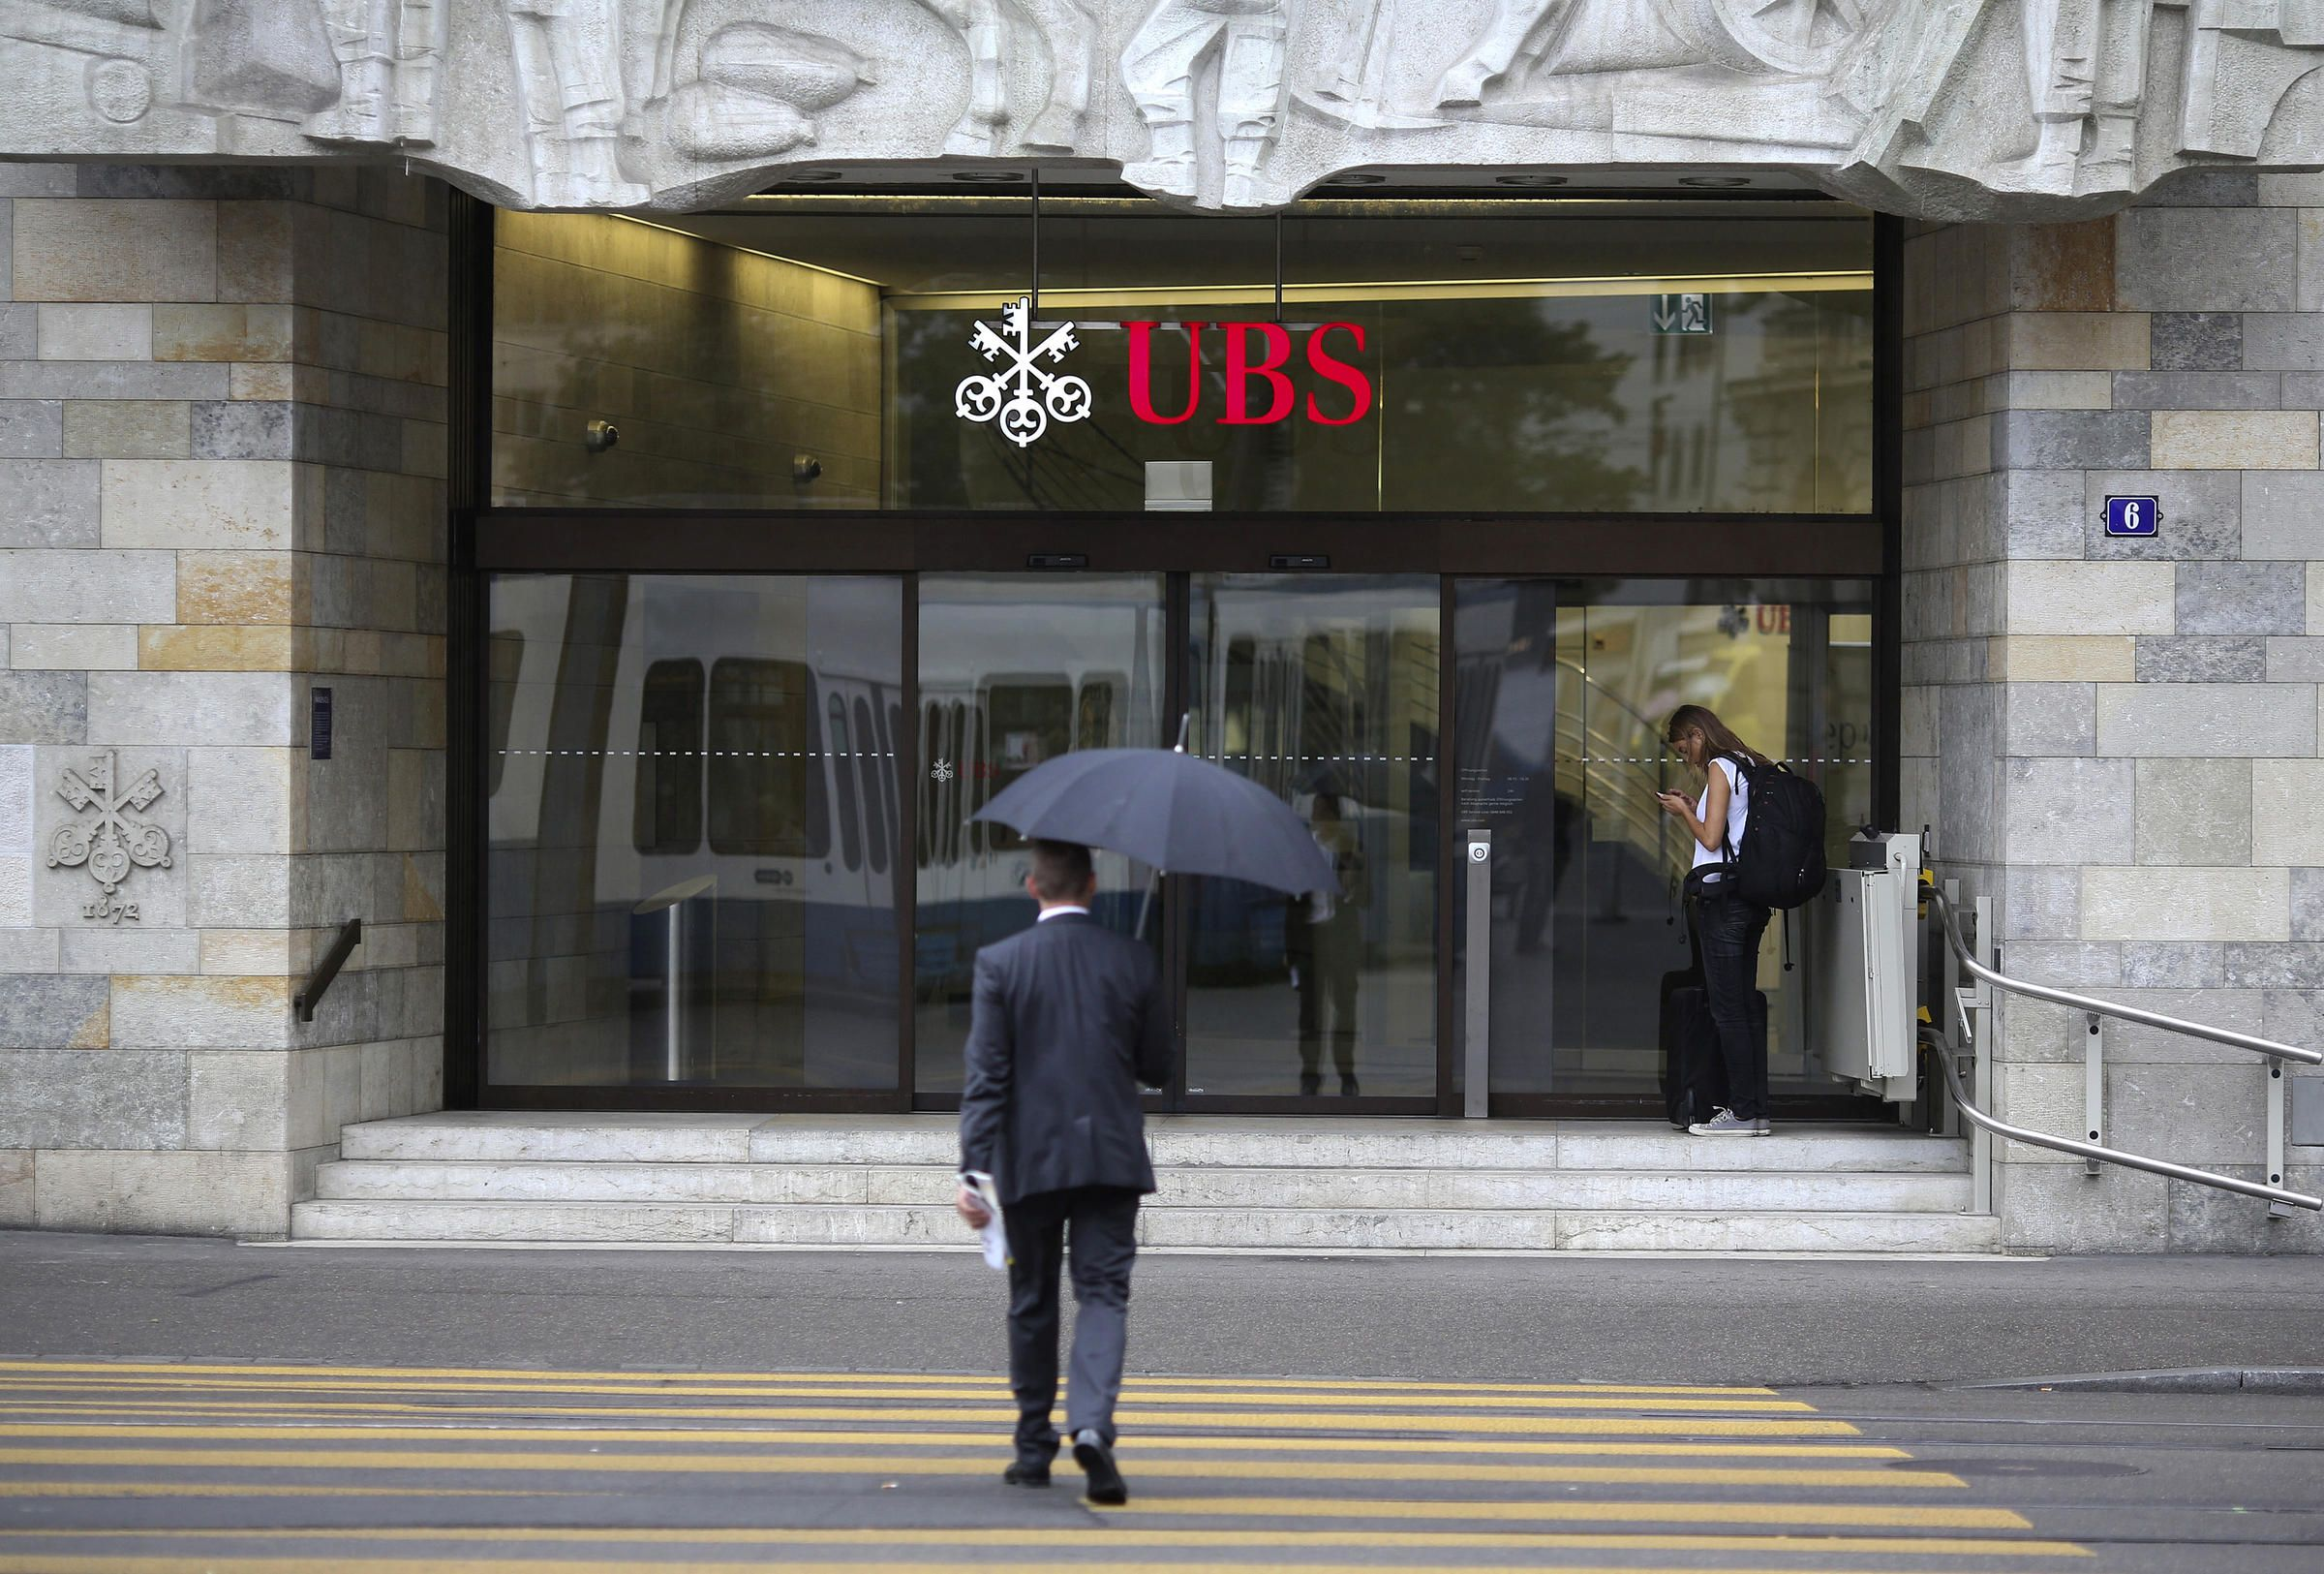 UBS slashing nearly two dozen jobs in Asia in cost-cutting